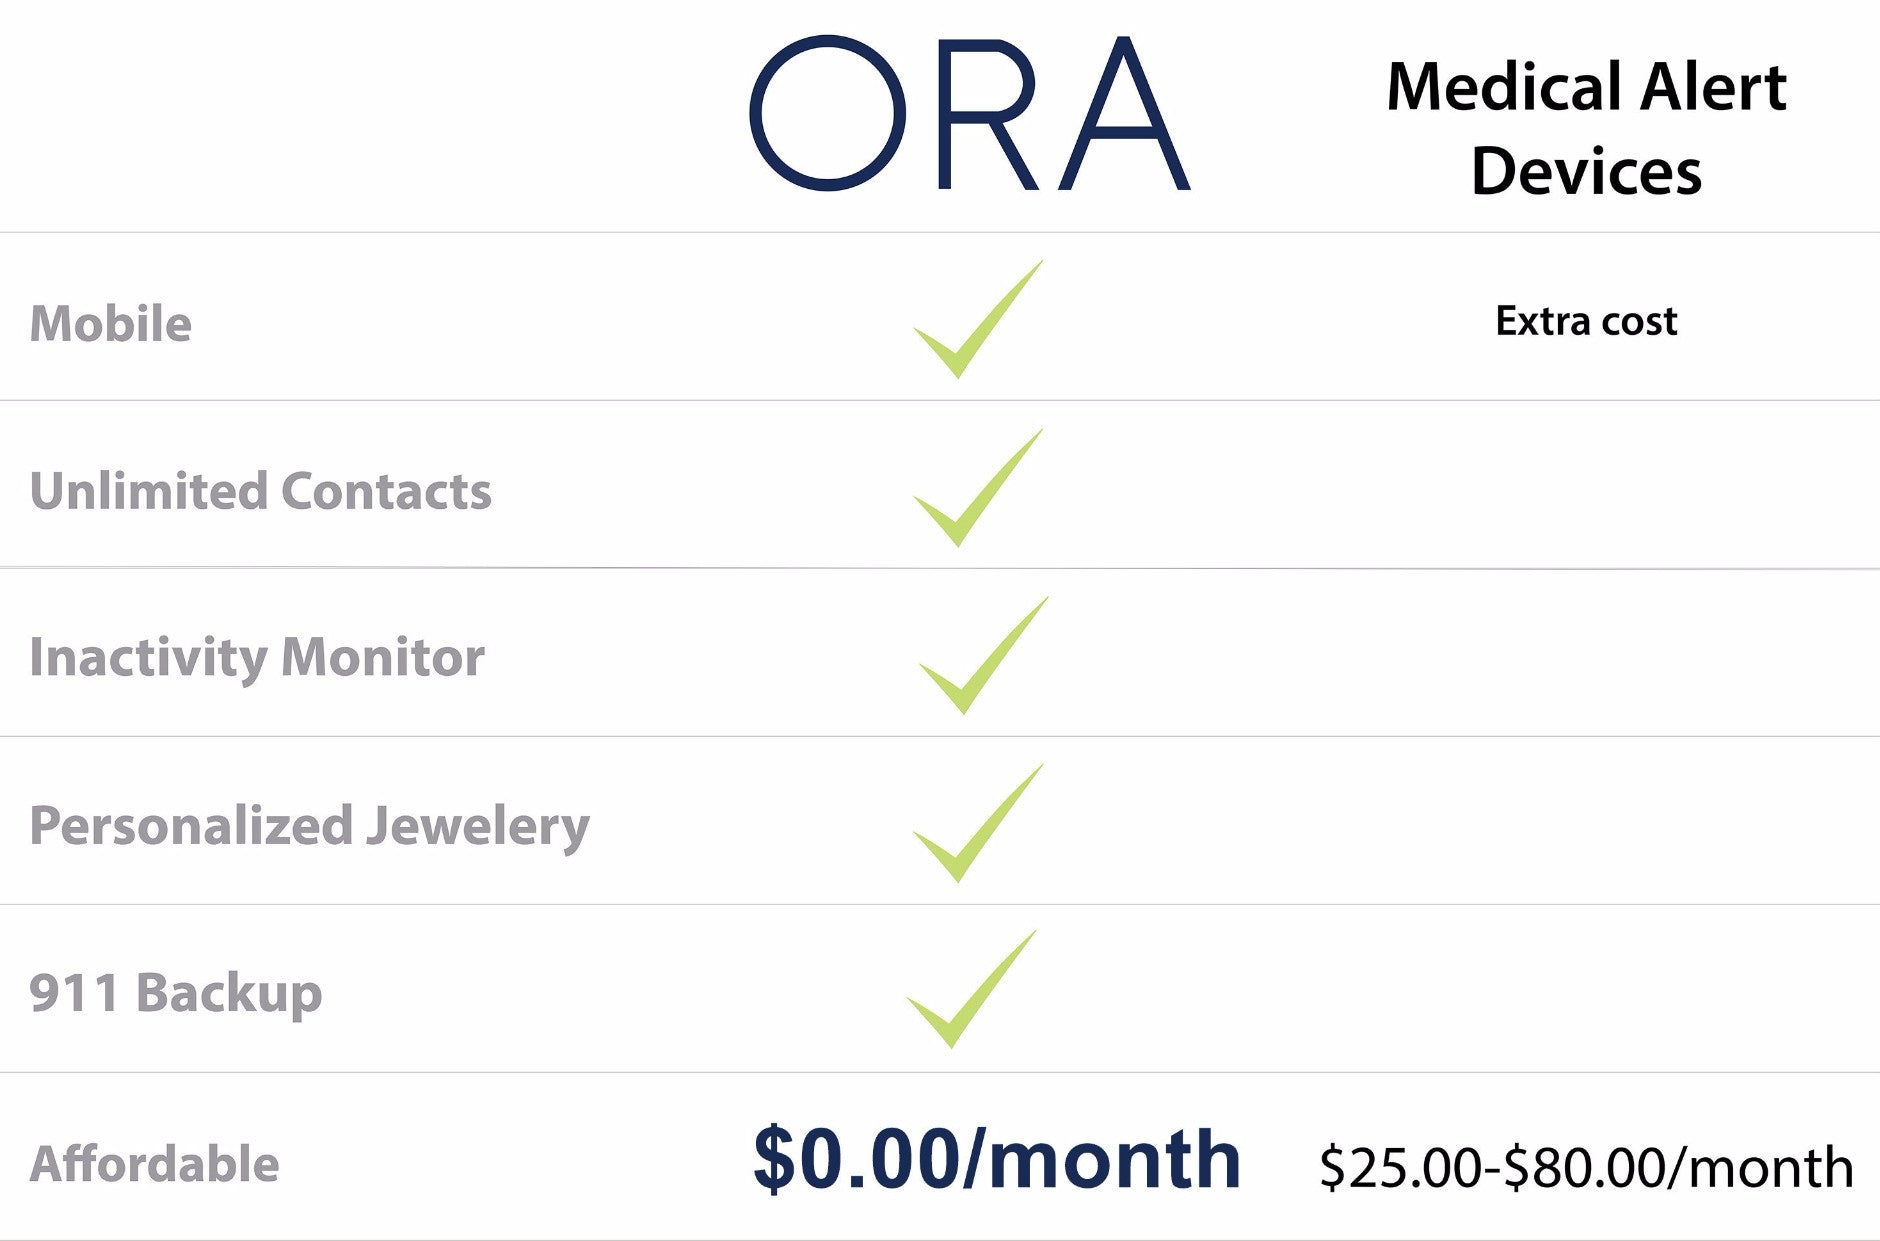 Compare ORA to other medical alert devices. ORA works anywhere, allows unlimited contacts, and can call 911